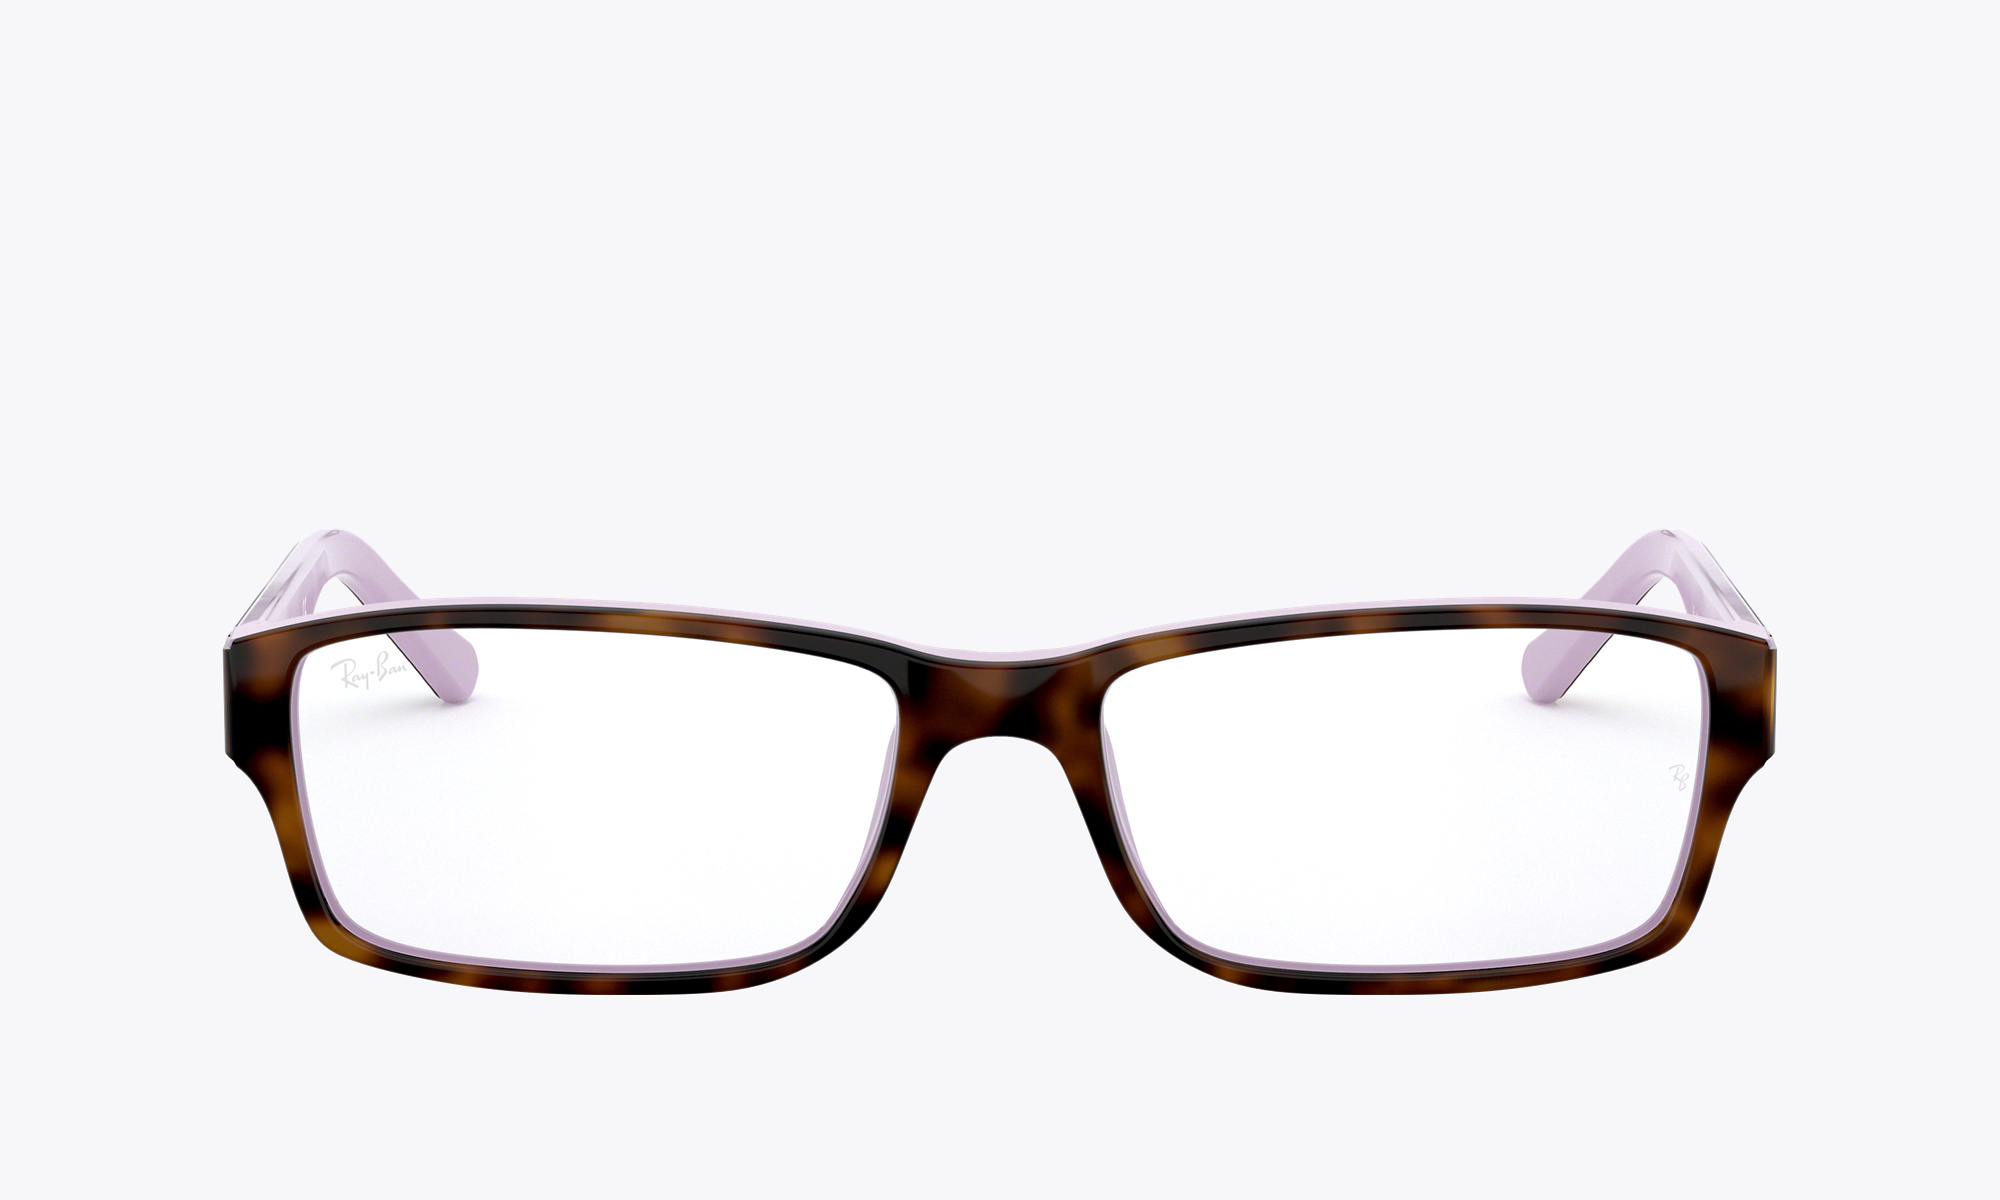 Image of Ray-Ban RB5169 color Tortoise